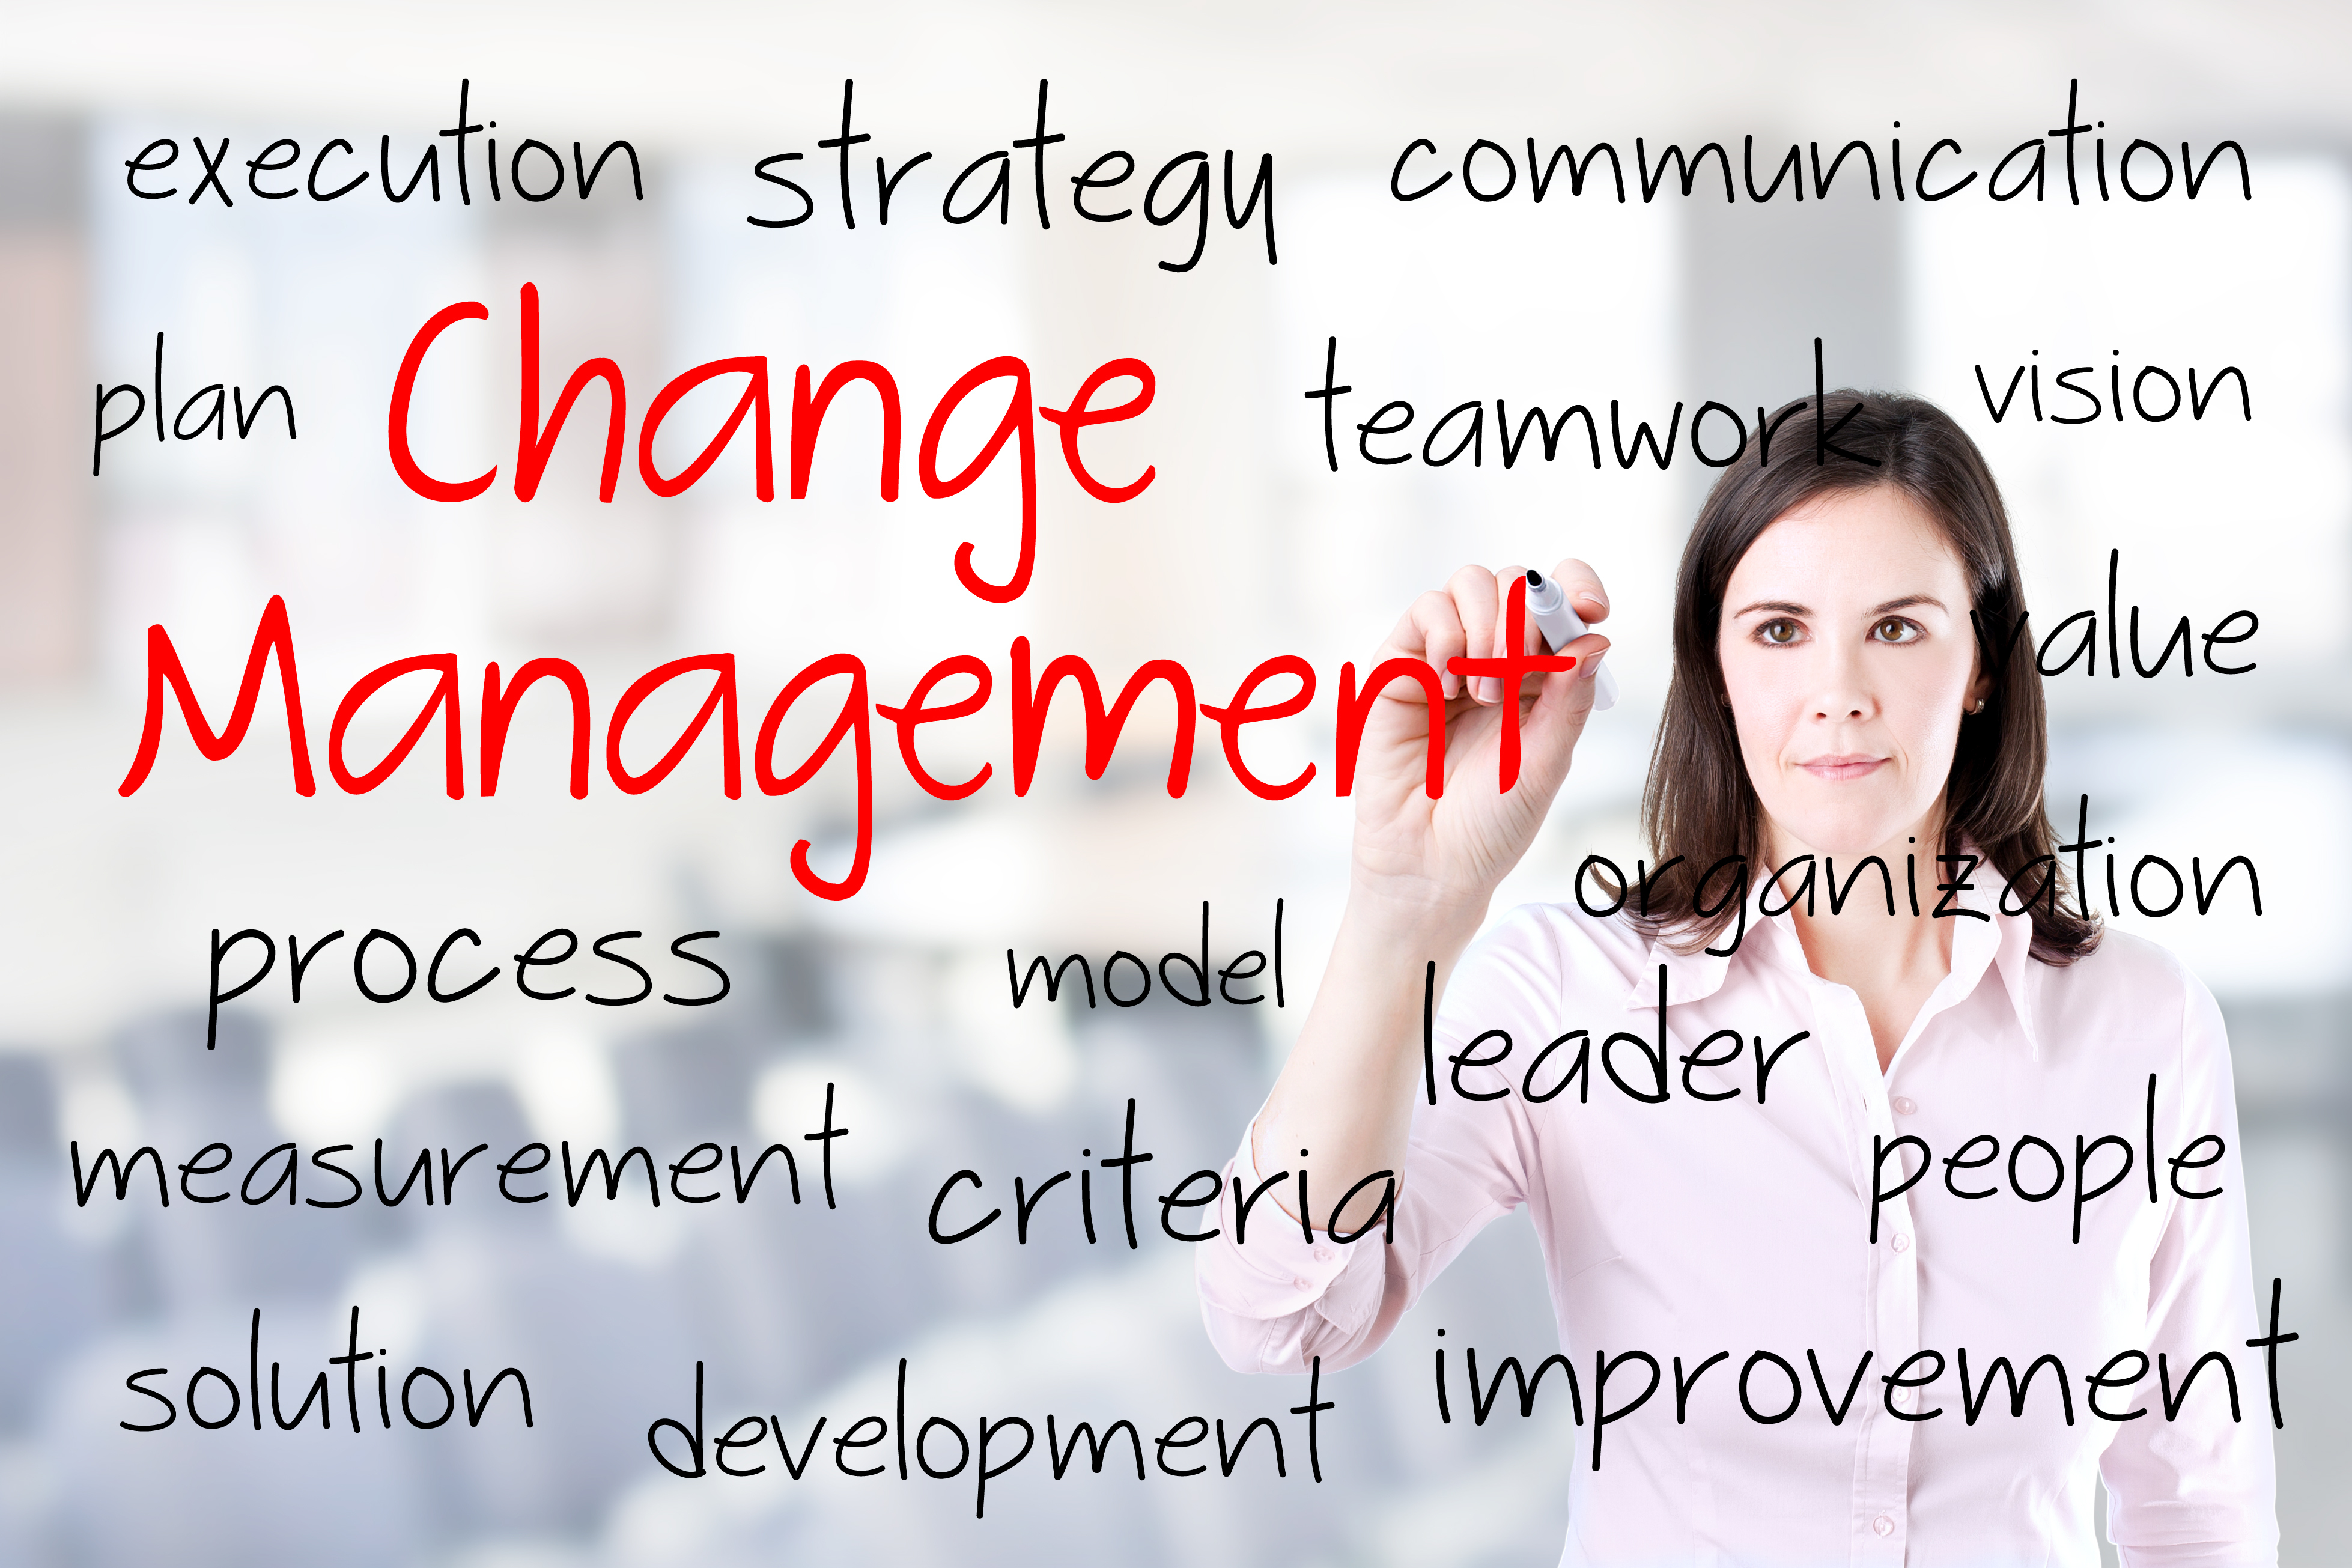 communicating change Effective communication helps drive desired and required changes in your organization here's how to effectively communicate change.